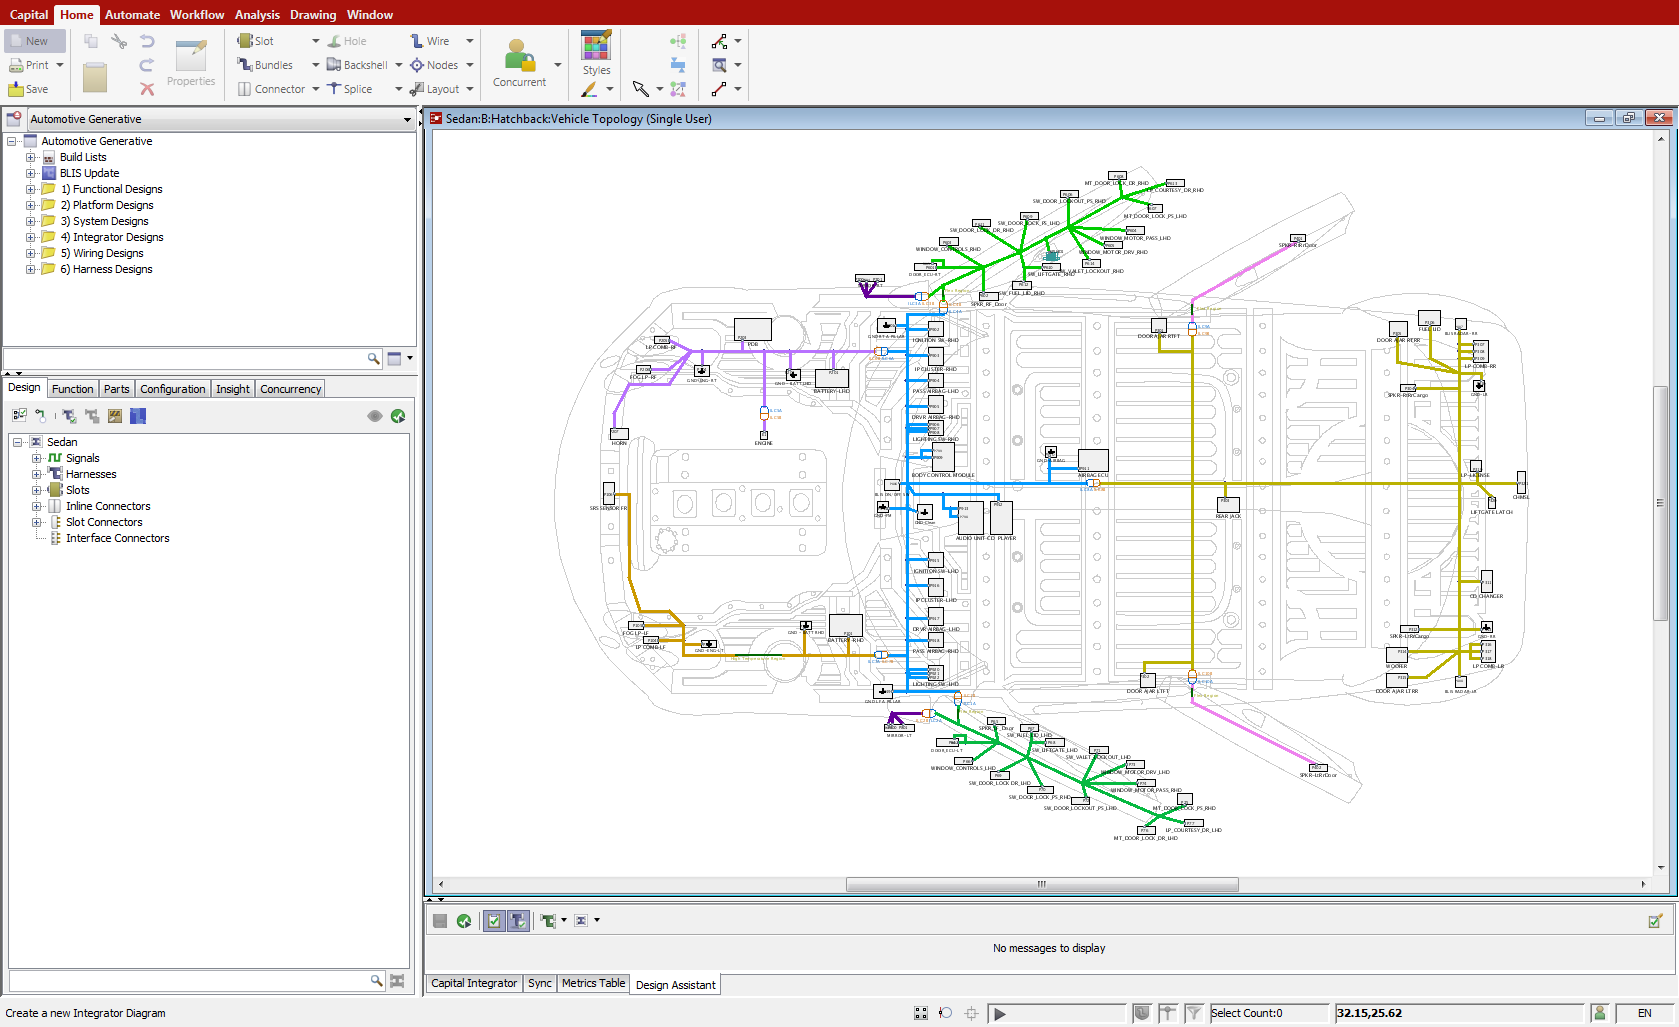 CapitalIntegrator E4720331?q=80&w=1600&fit=max capital integrator electrical design automation mentor graphics wiring harness design software at gsmportal.co